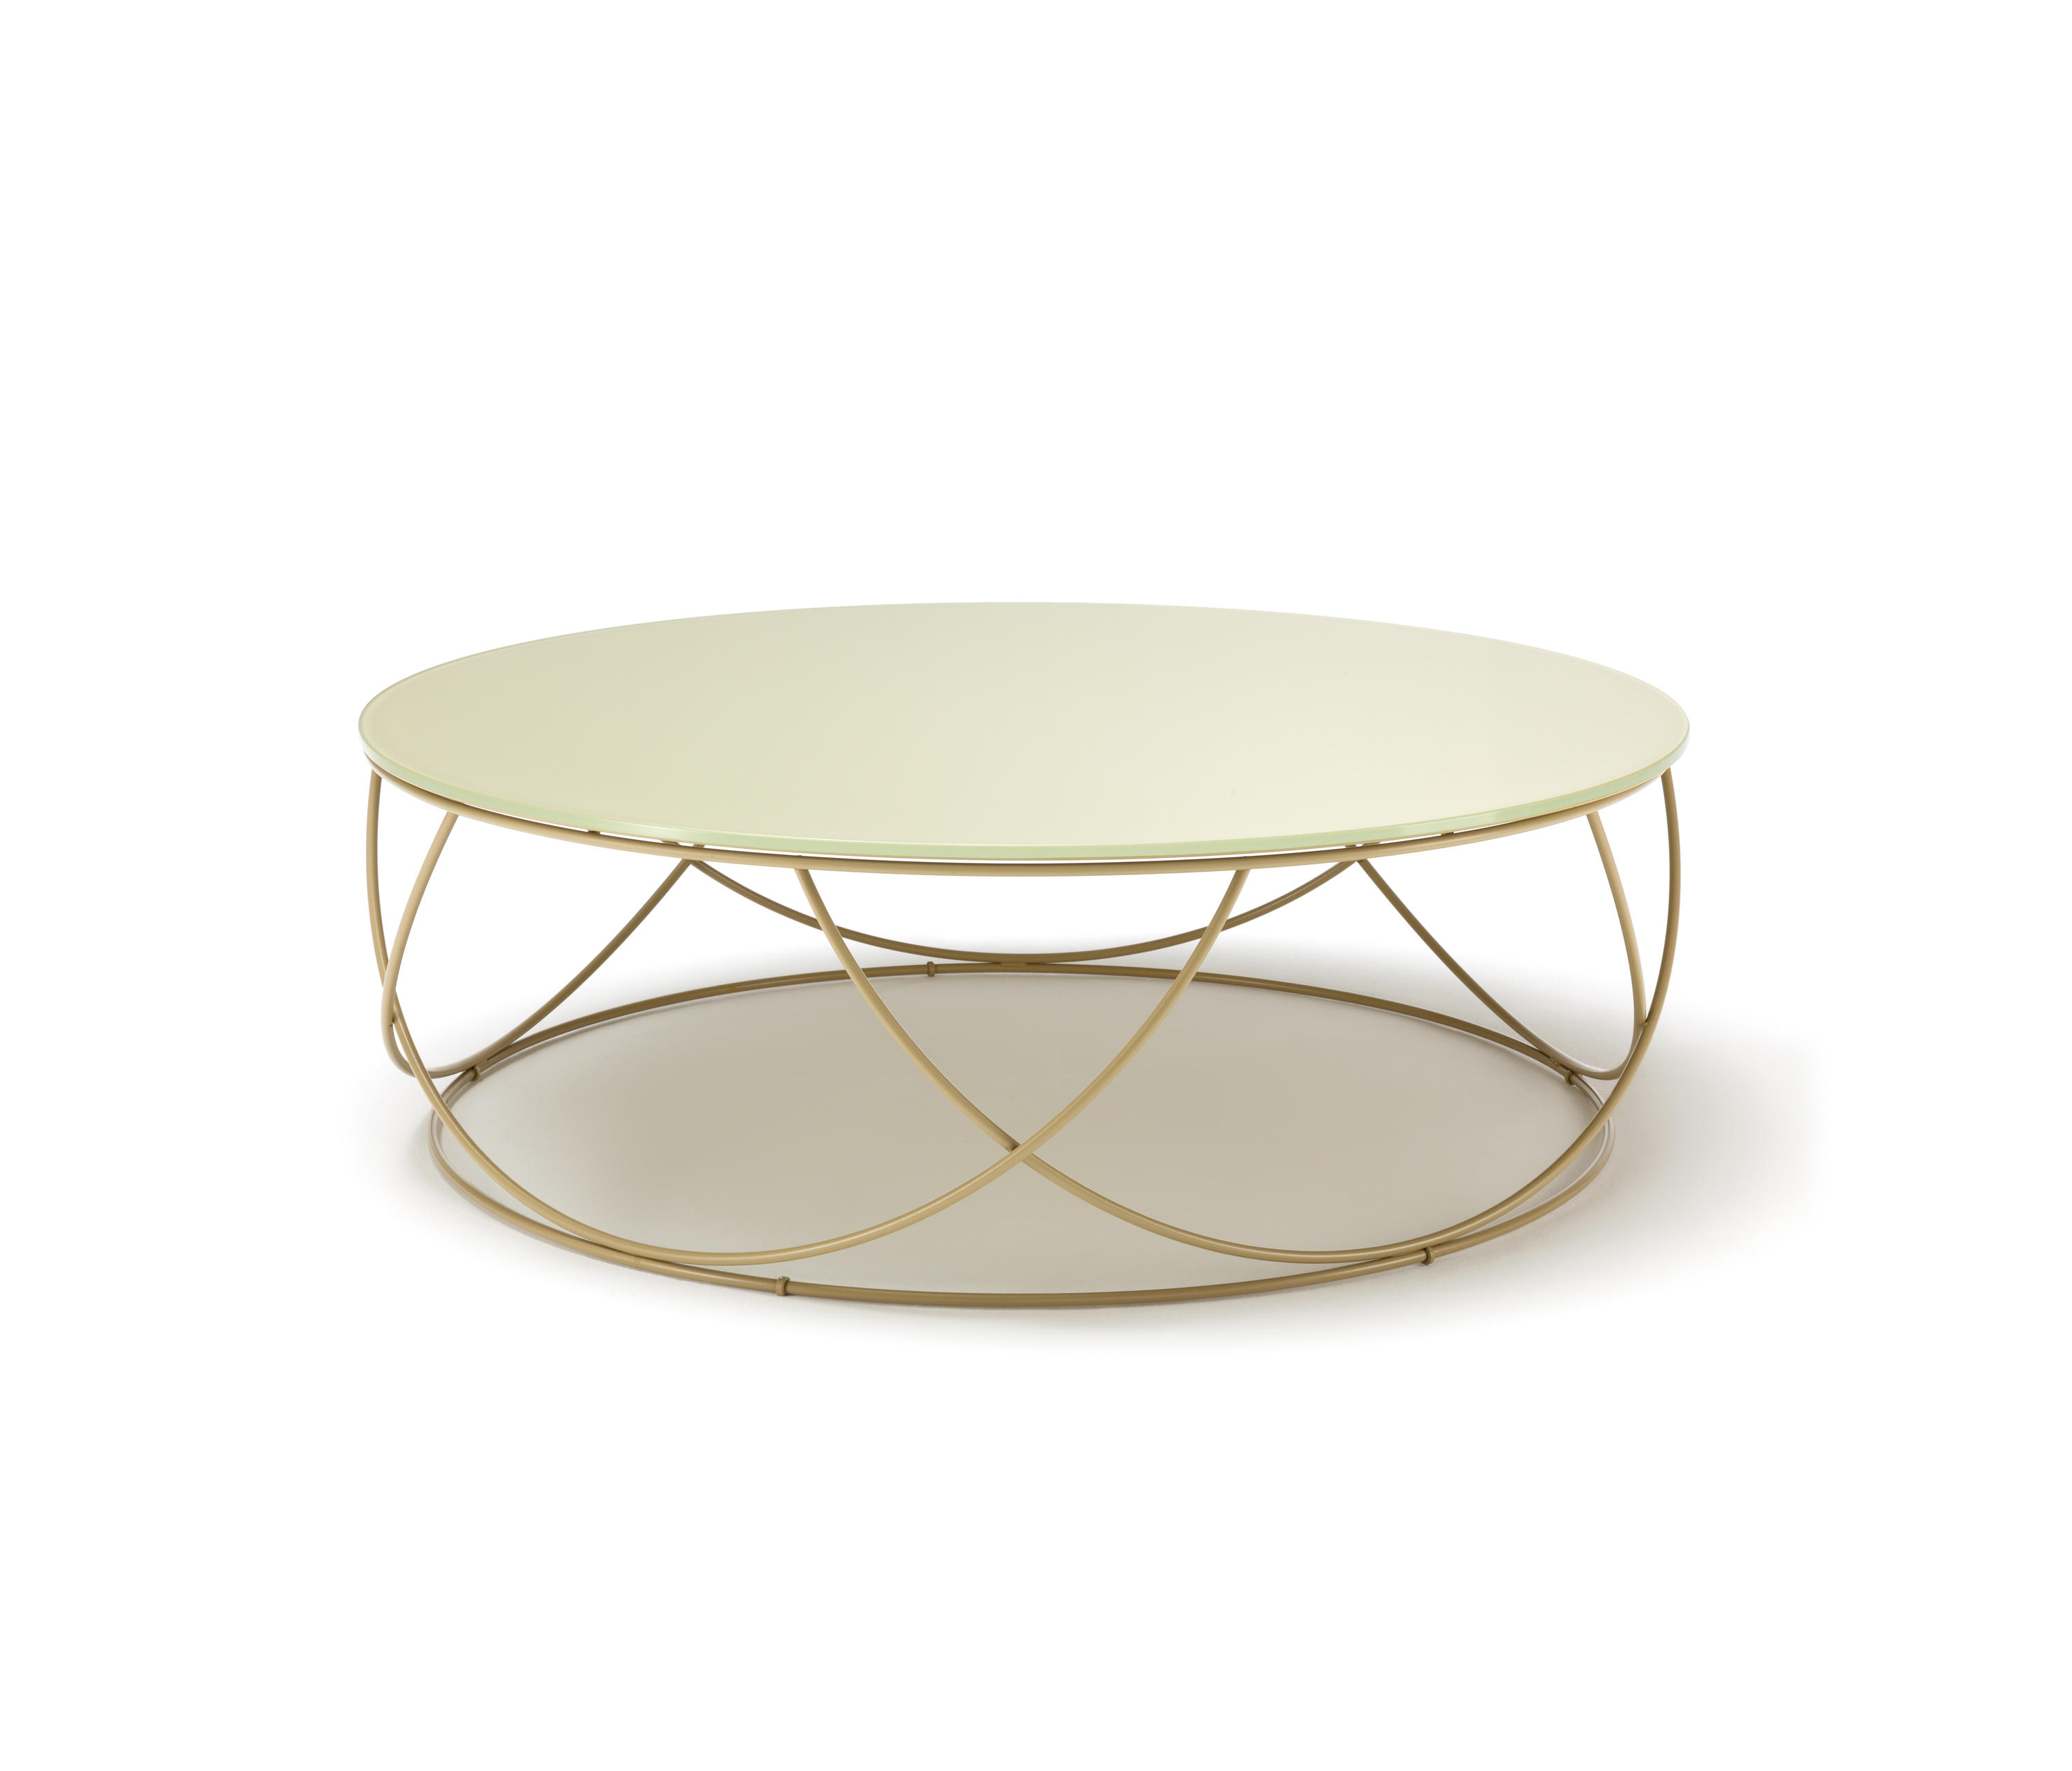 Rolf Benz Tisch Rolf Benz 8770 Coffee Tables From Rolf Benz Architonic